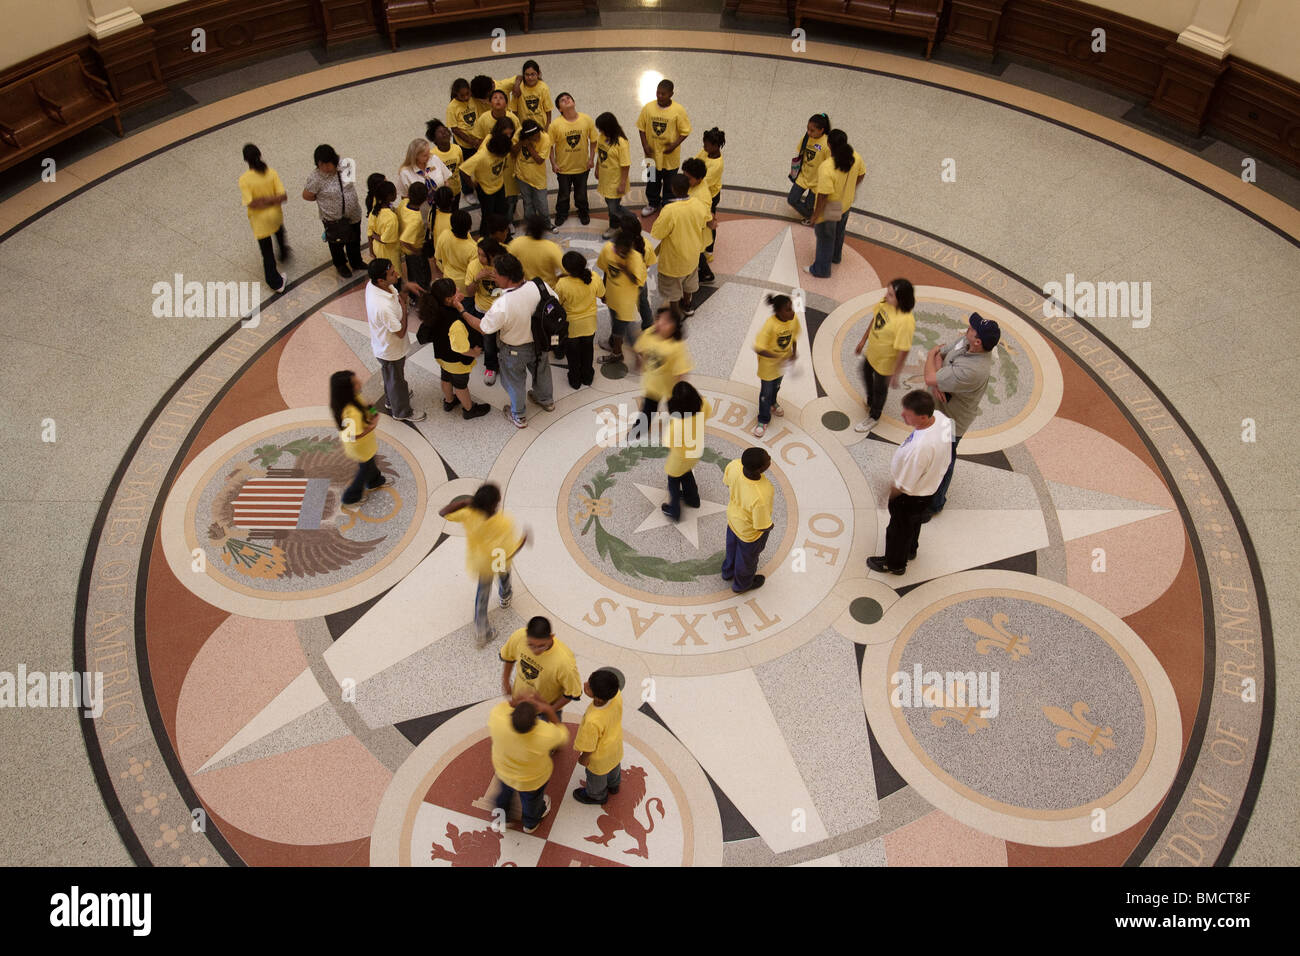 School children on guided tour of Texas state capitol building rotunda in Austin - Stock Image